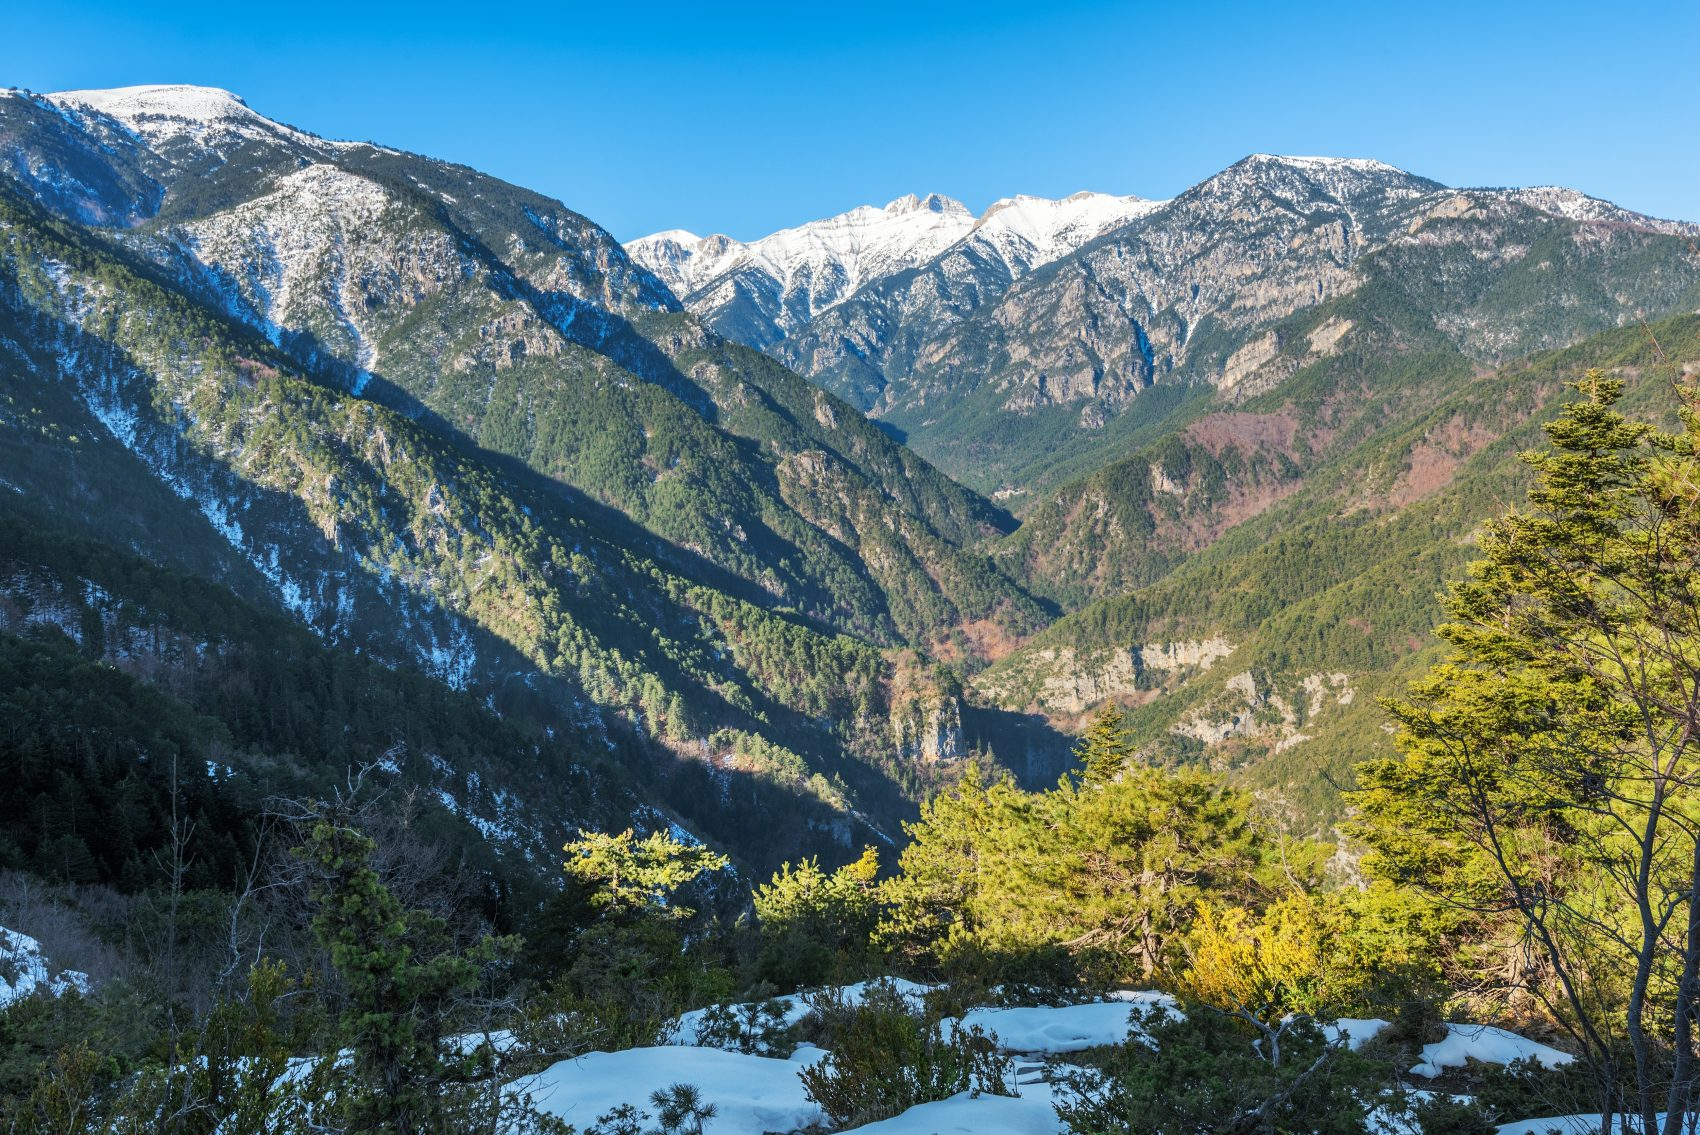 Olympus mountain in Greece, Enipeas gorge and the high peaks at distance